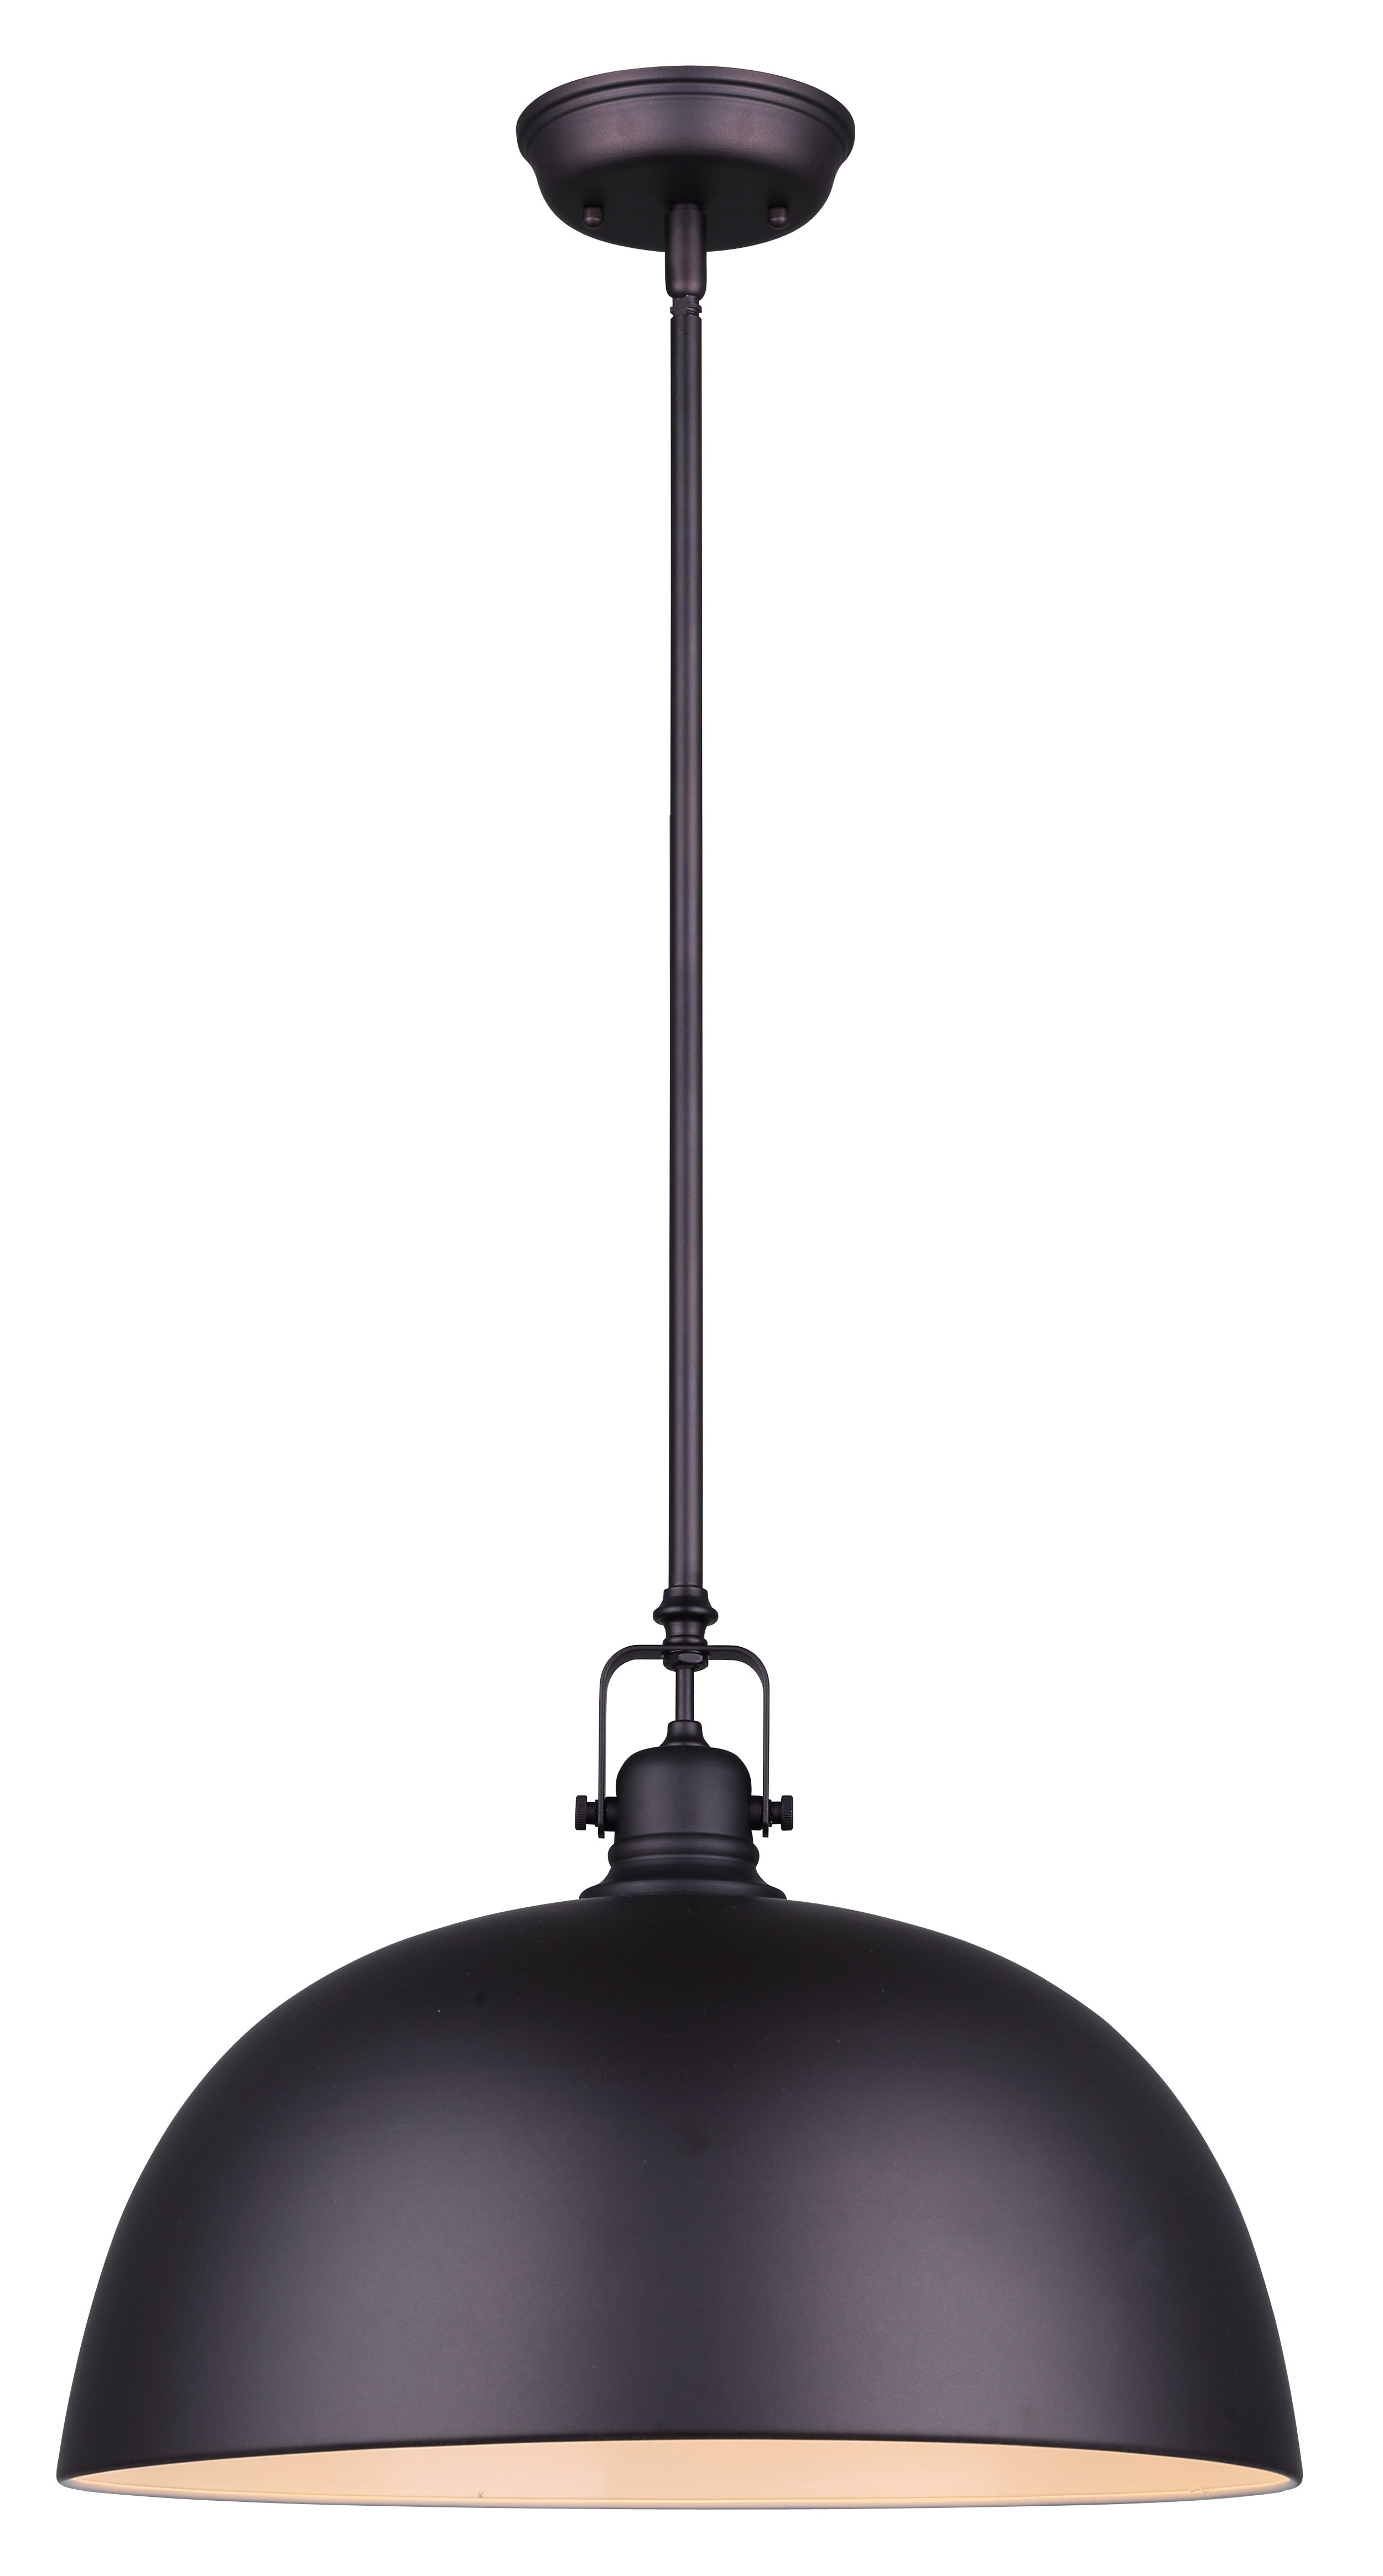 Southlake 1 Light Single Dome Pendant For Most Current Bodalla 1 Light Single Bell Pendants (View 17 of 20)